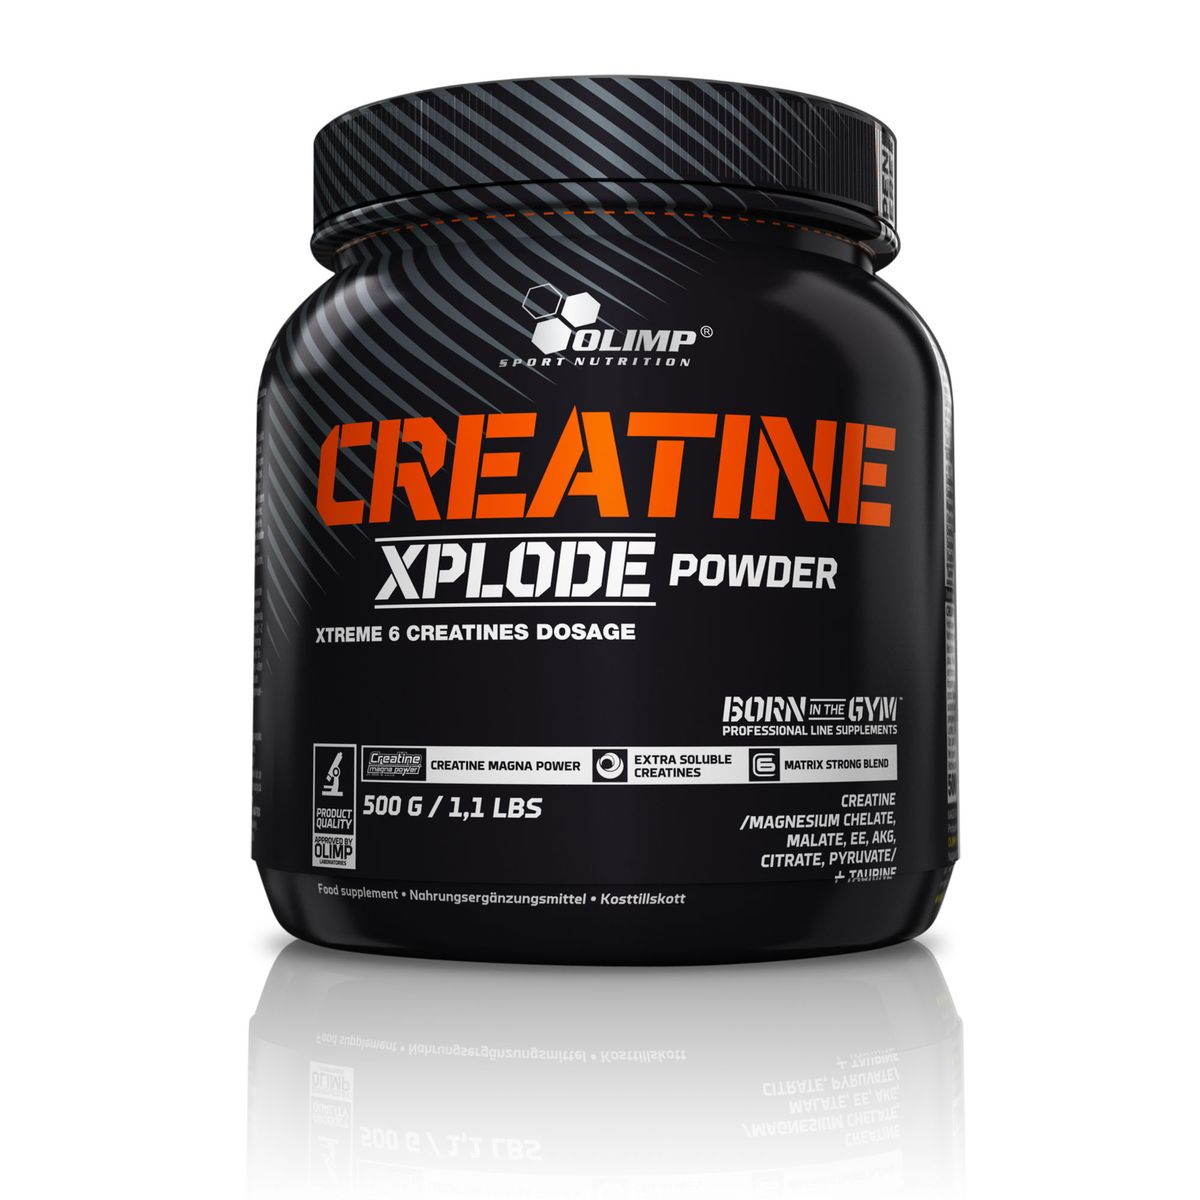 Креатин Olimp Sport Nutrition Creatine Xplode Powder, апельсин, 500 г радиосистема sennheiser ew 100 945 g3 b x